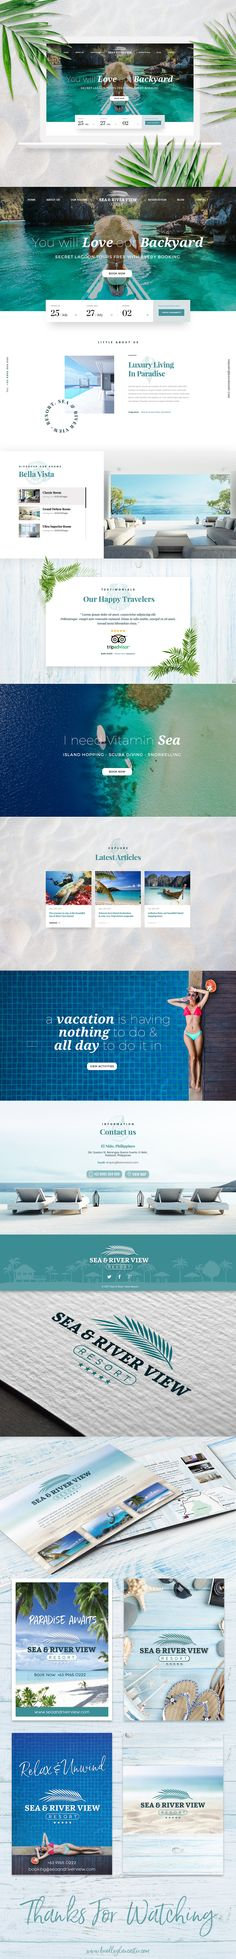 Luxury Tropical Website Design and Branding Identity for Sea and River View Resort.    Bringing the elements of Nature, Nautical, Tropical, Beach, Luxury into this design with the use of great quality photography.    Designed by Bradley Lancaster    Behance Project Link.    https://www.behance.net/gallery/54530345/Luxury-Tropical-Resort-Hotel-Modern-Website-Design    www.bradleylancaster.com    #branding  #clean  #flat  #holiday  #home  #luxury  #modern  page  #resort  #tropical #website #ux…